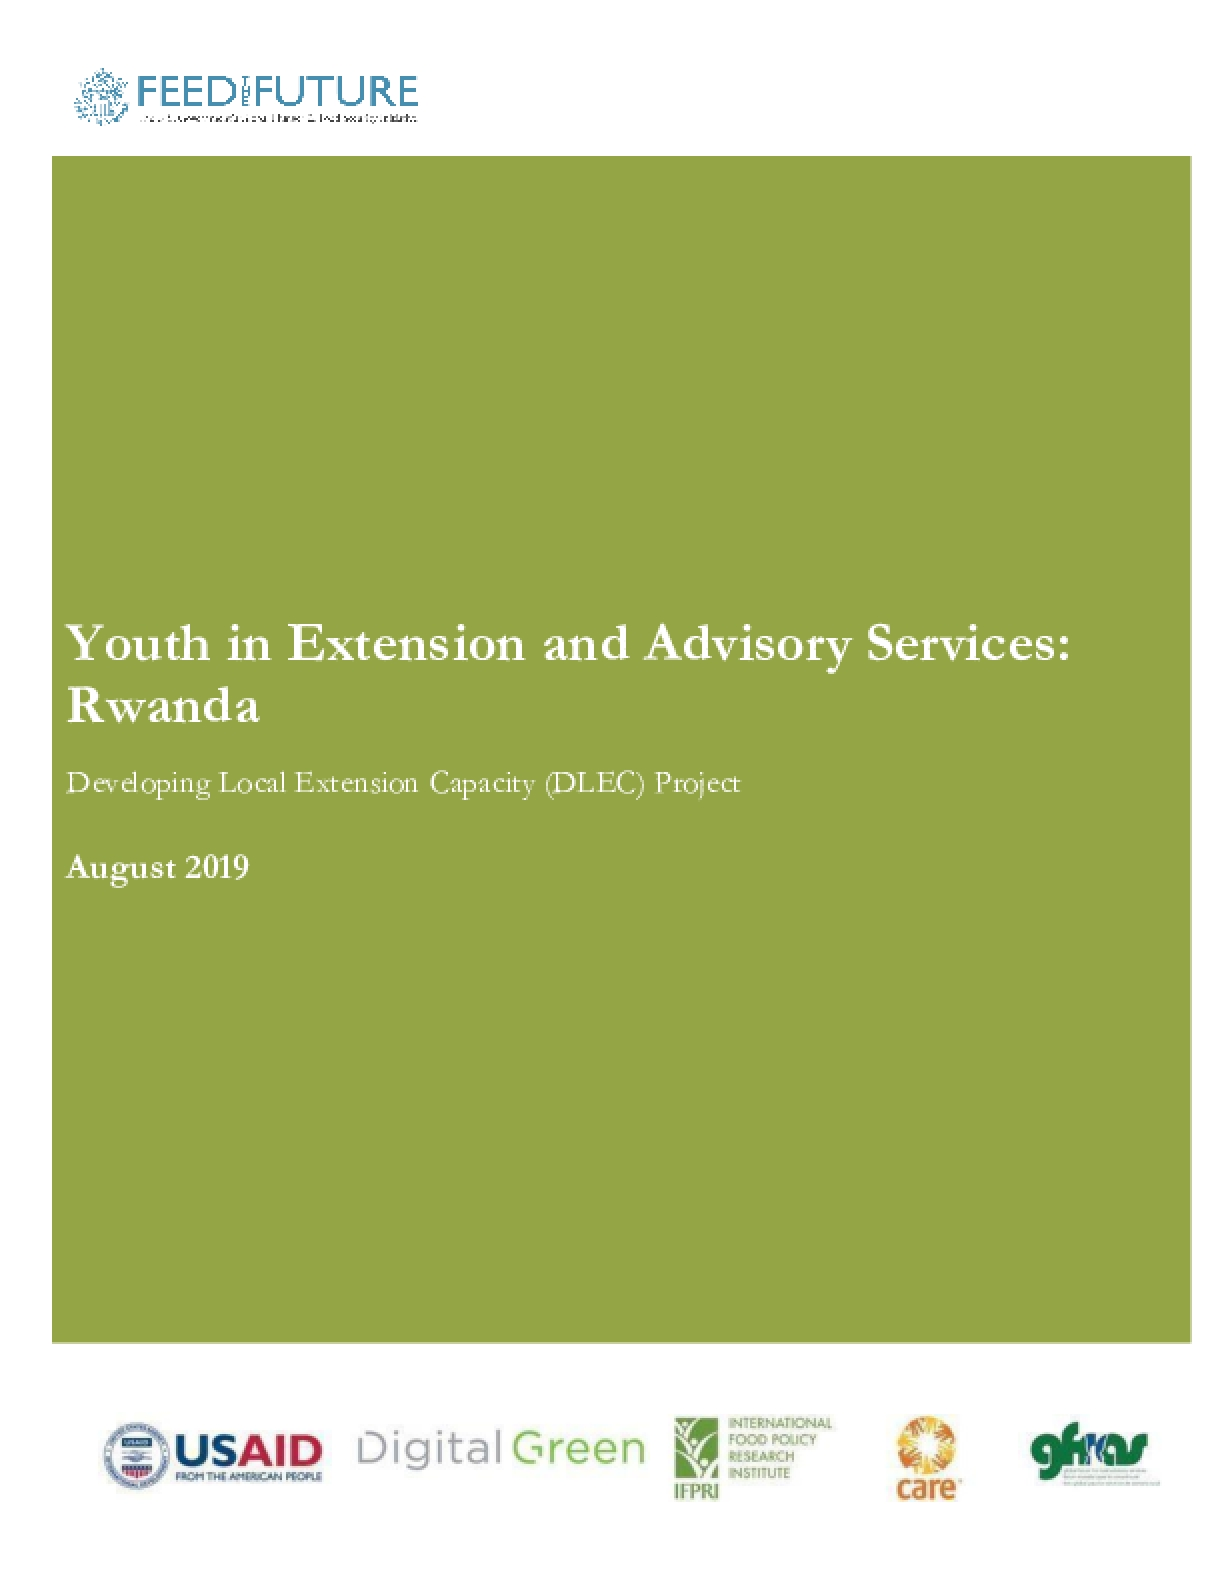 Youth in Extension and Advisory Services: Rwanda. Developing Local Extension Capacity Project